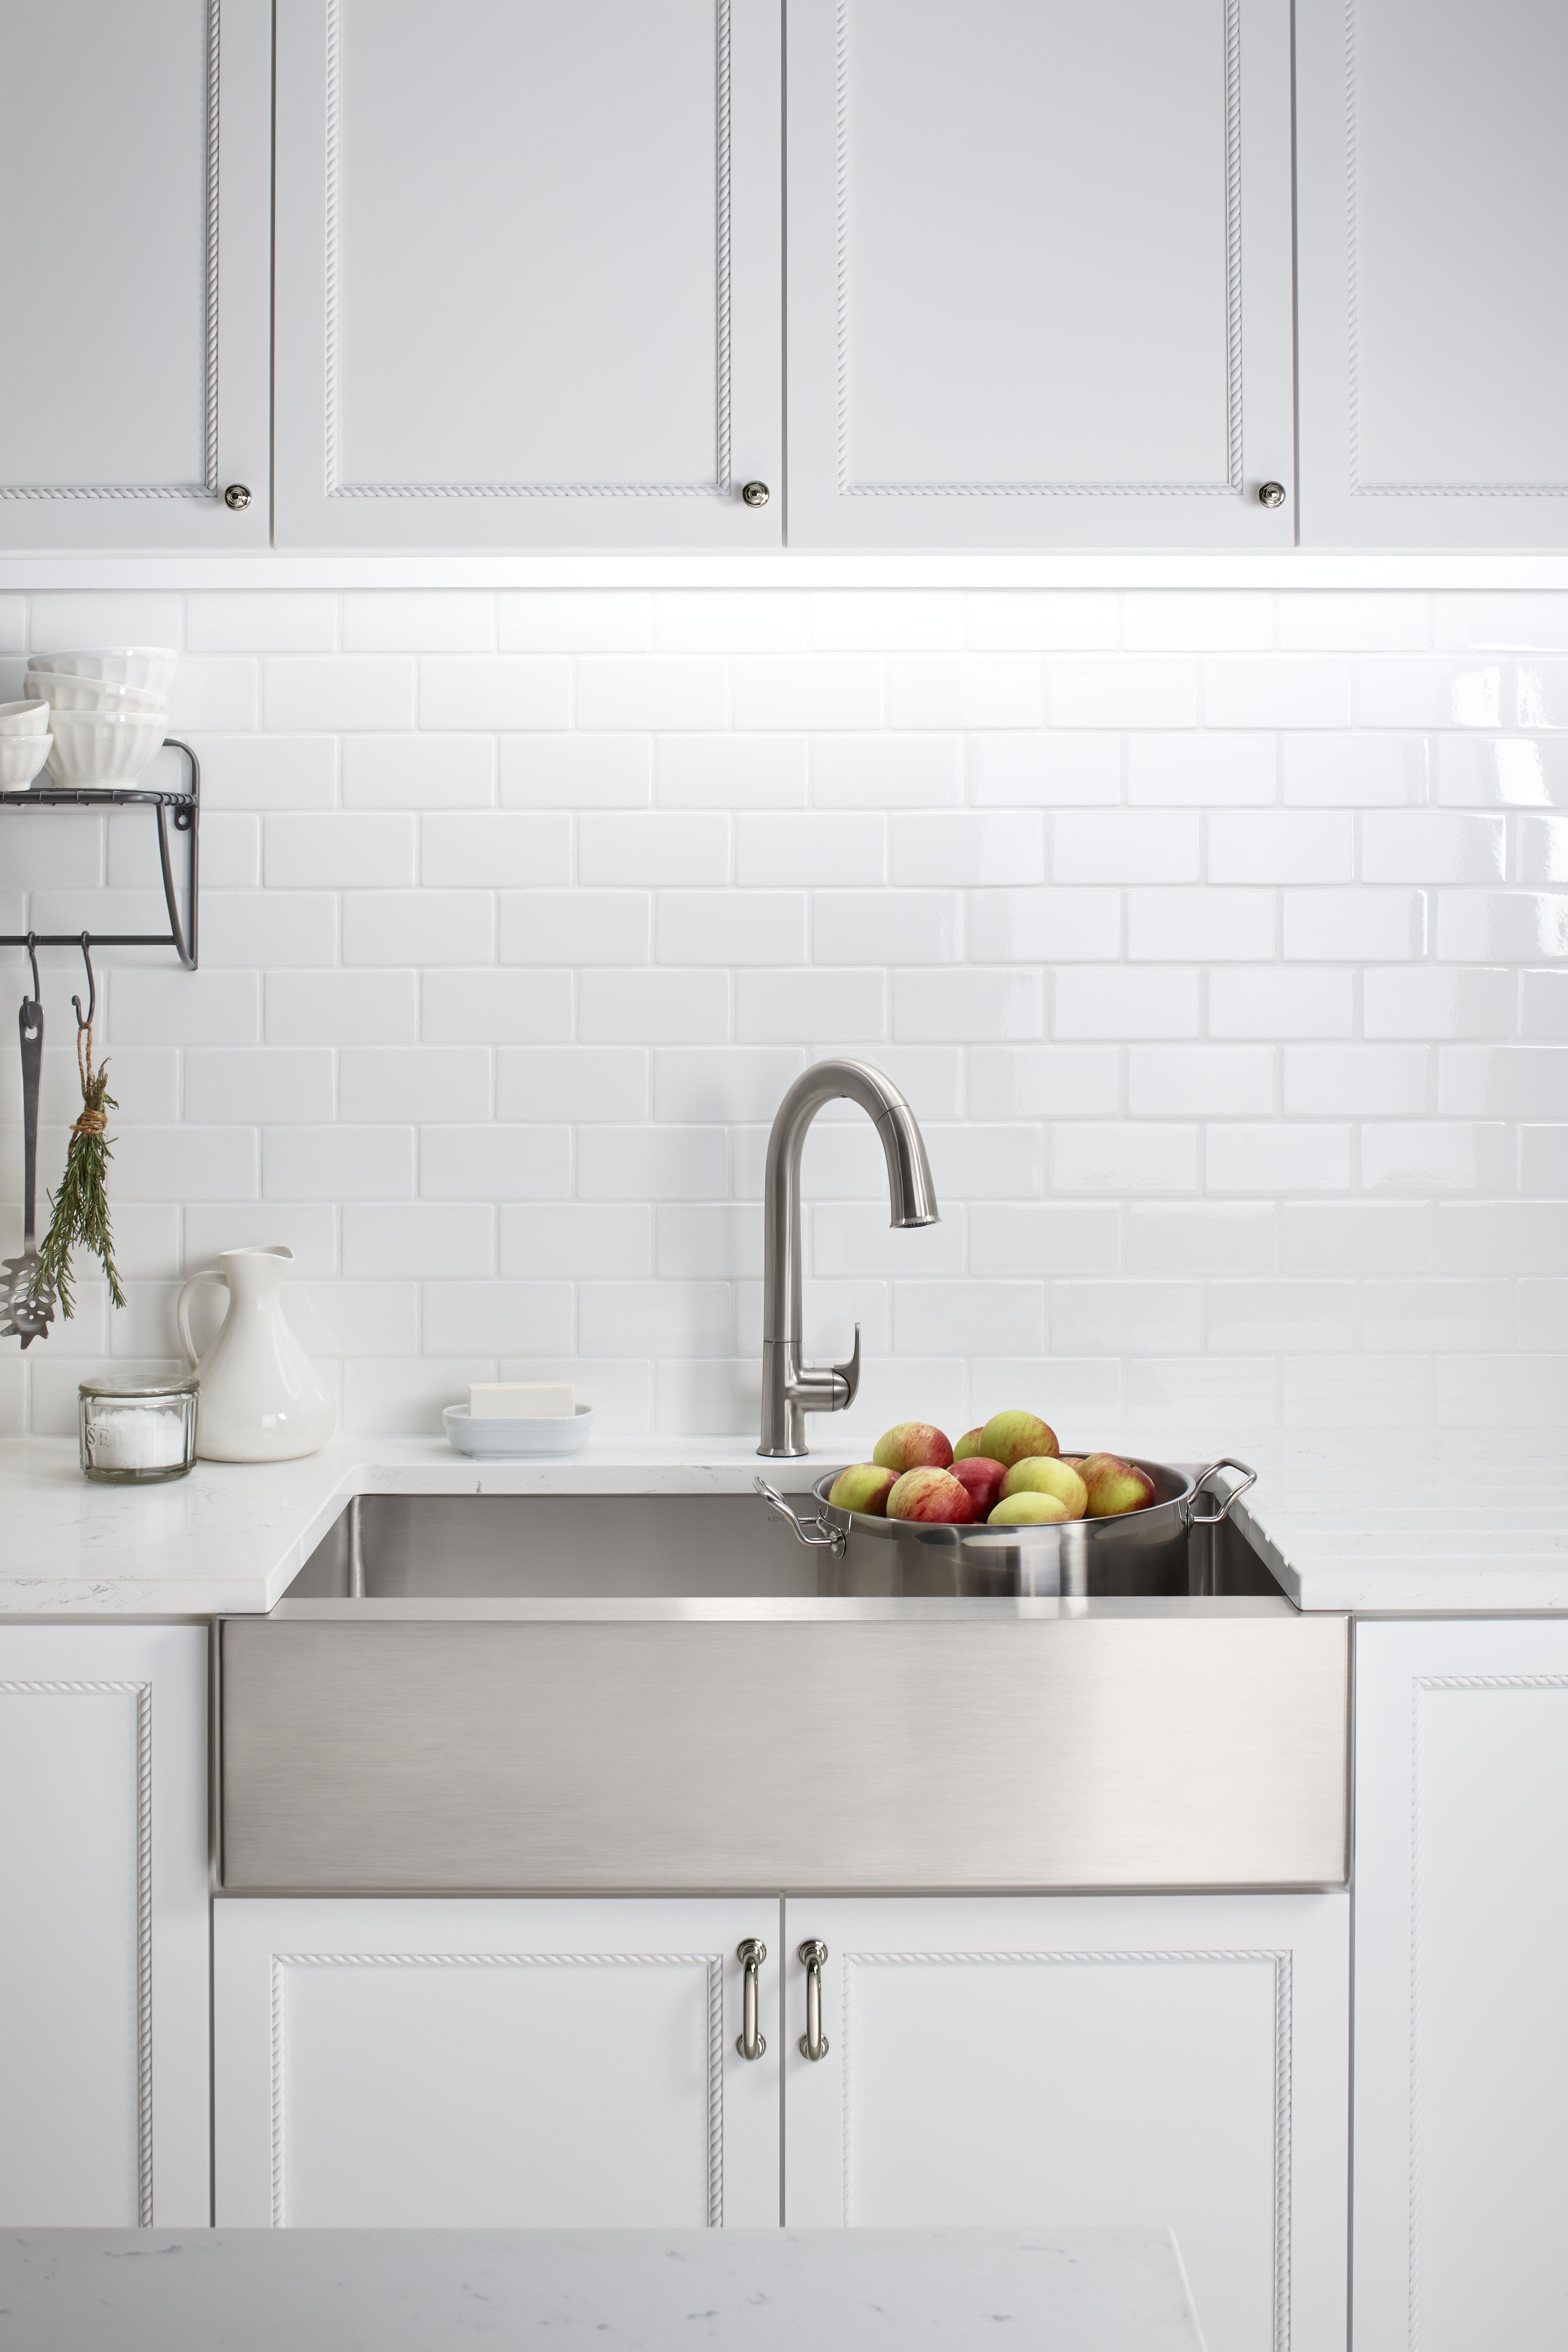 Beautiful Chrome Sink From Kohler In A White Modern Kitchen With Subway Tiles Corner Sink Kitchen Modern Kitchen Farmhouse Sink